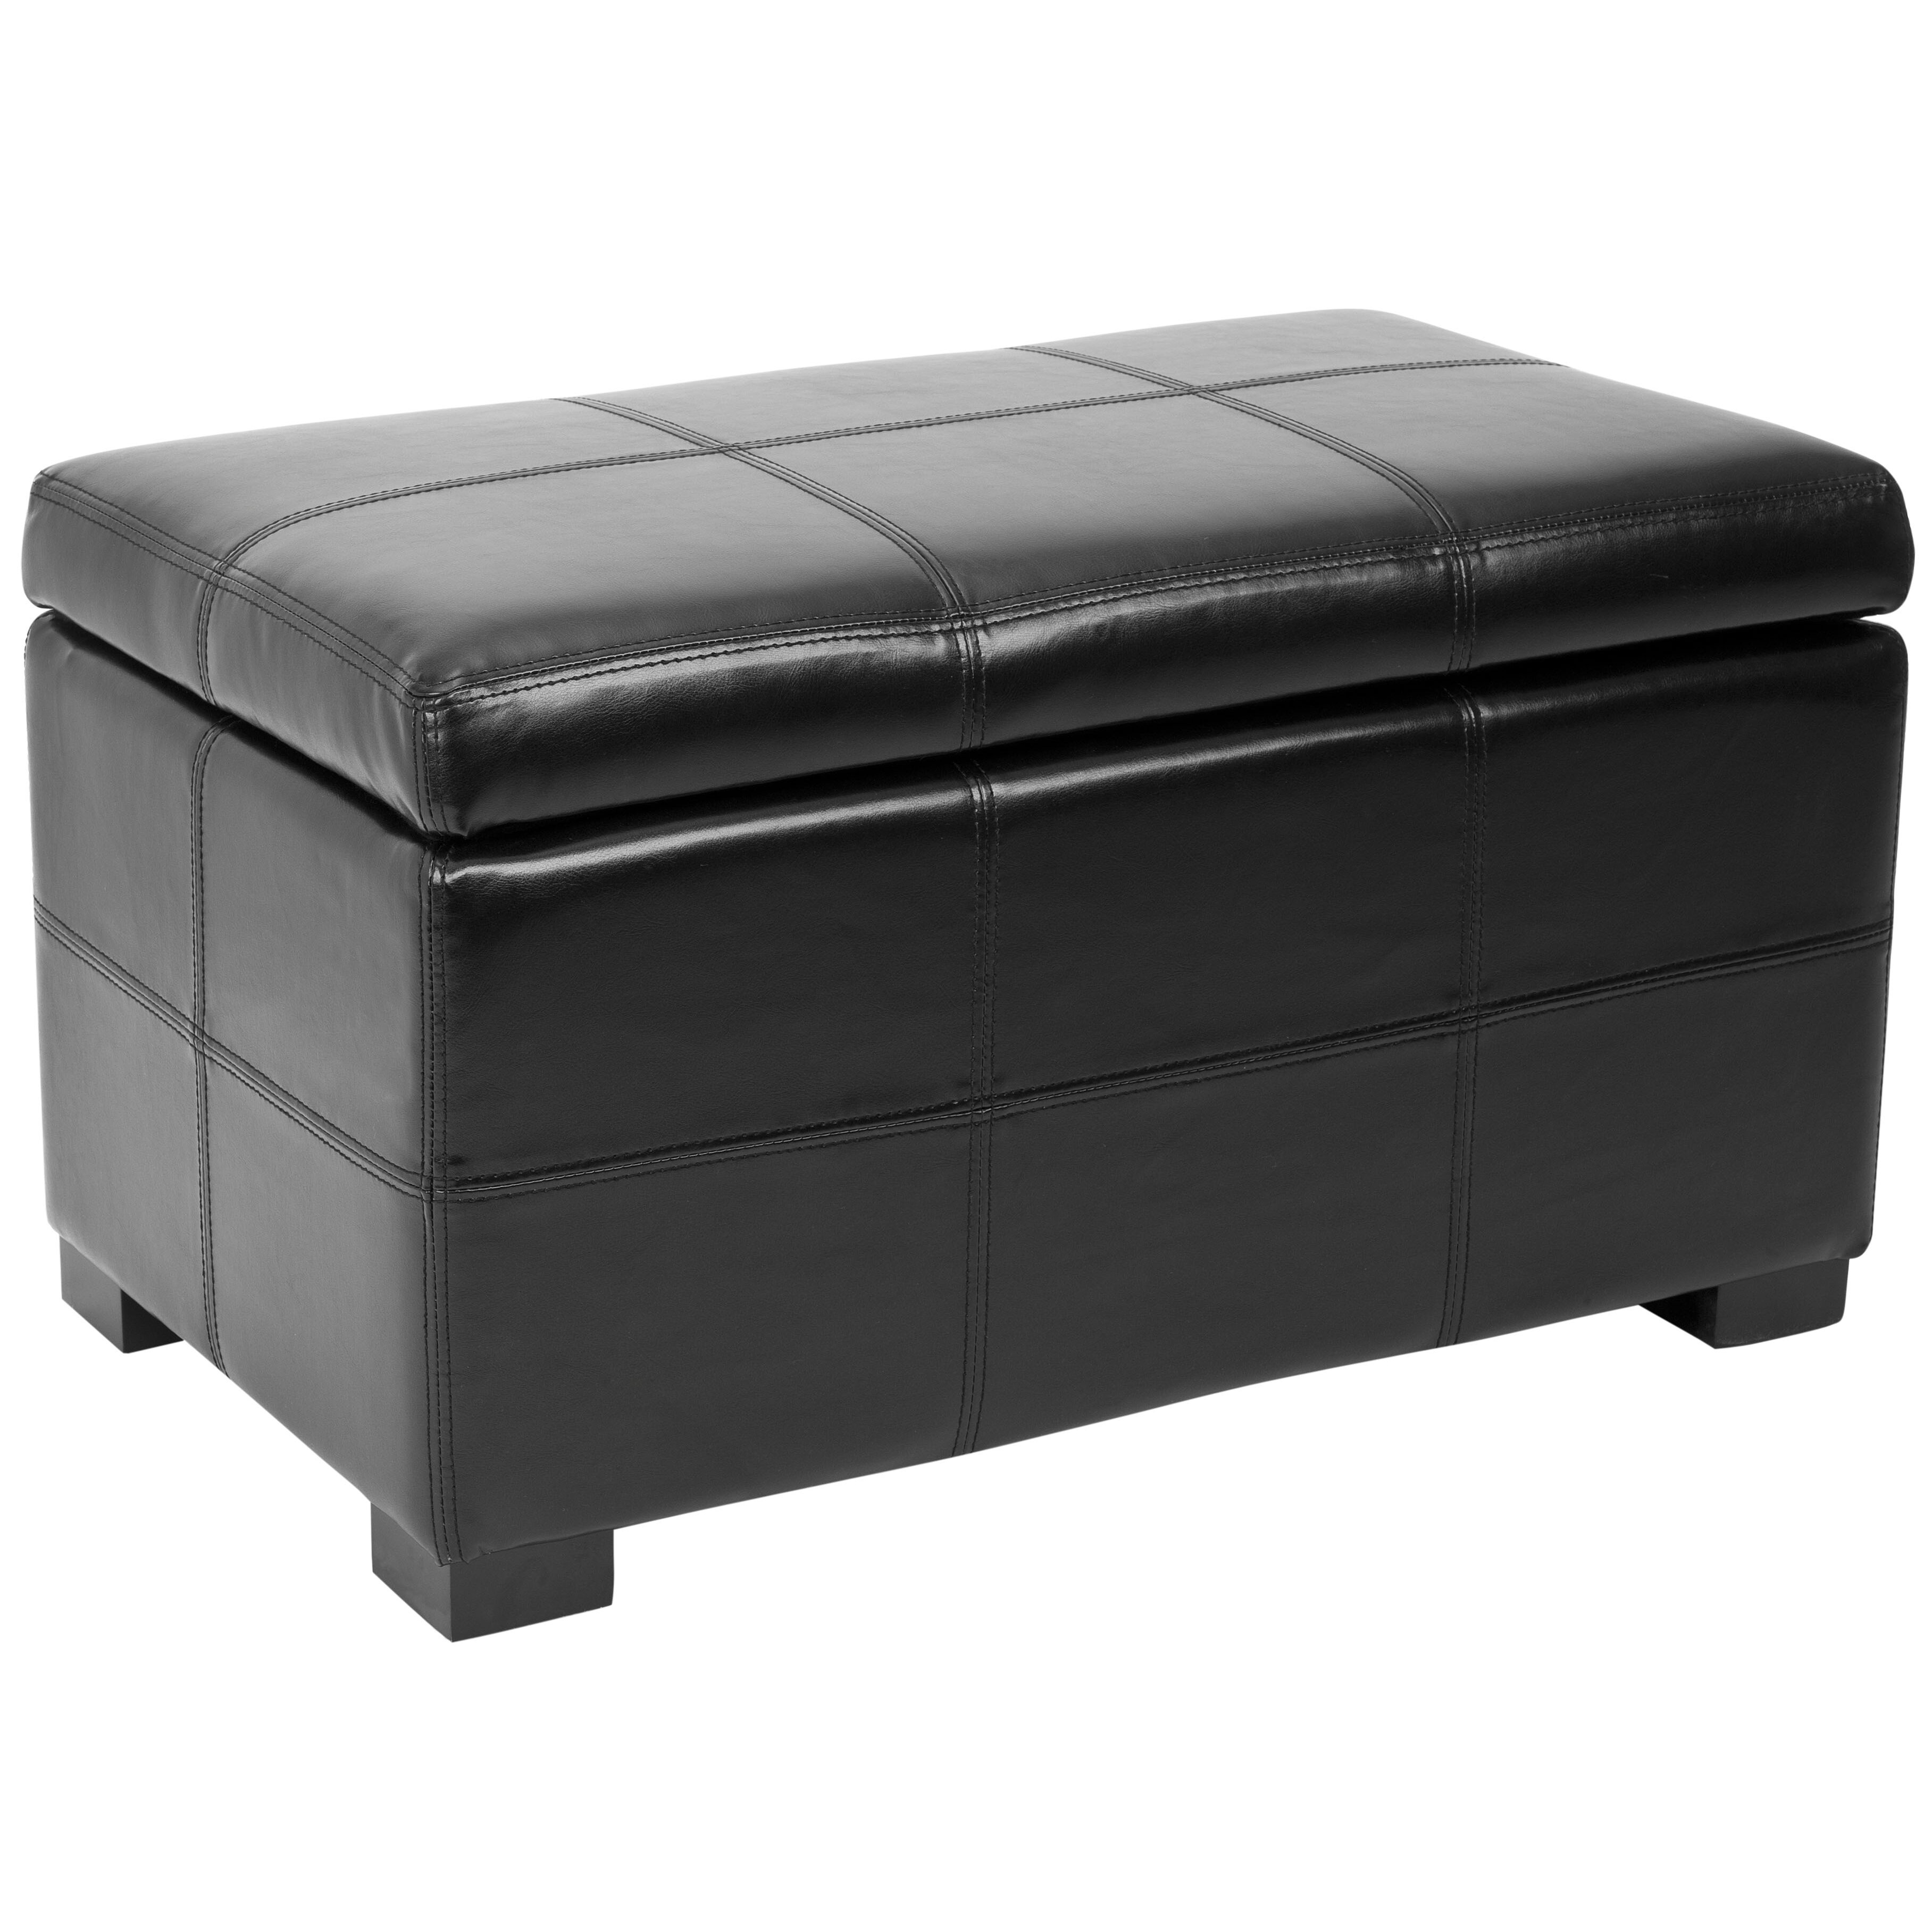 Leather Bedroom Bench Safavieh Lucas Leather Bedroom Storage Bedroom Bench Reviews